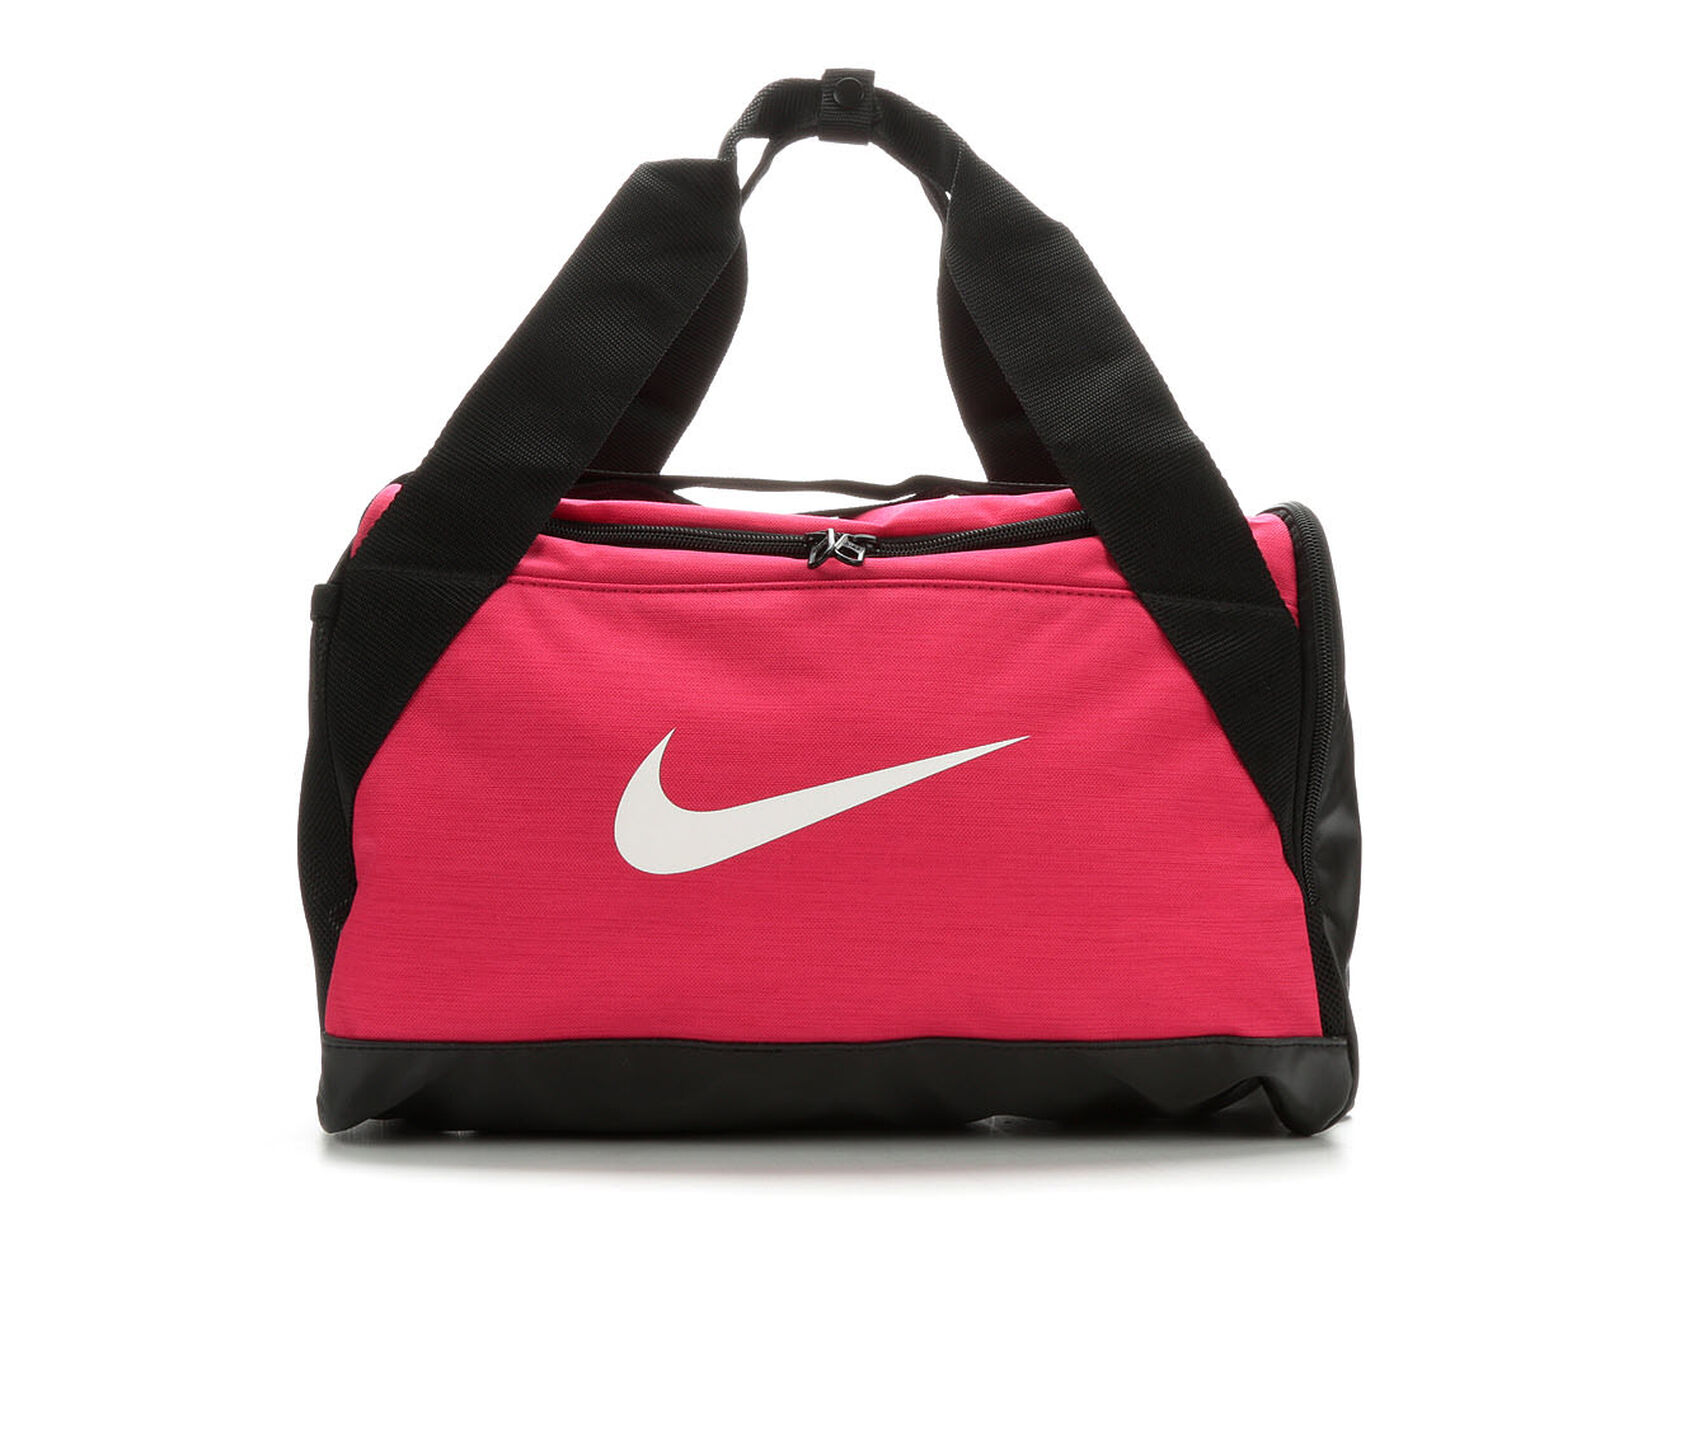 2ddfa931b3 Nike Brasilia Extra Small Duffel Bag. Previous